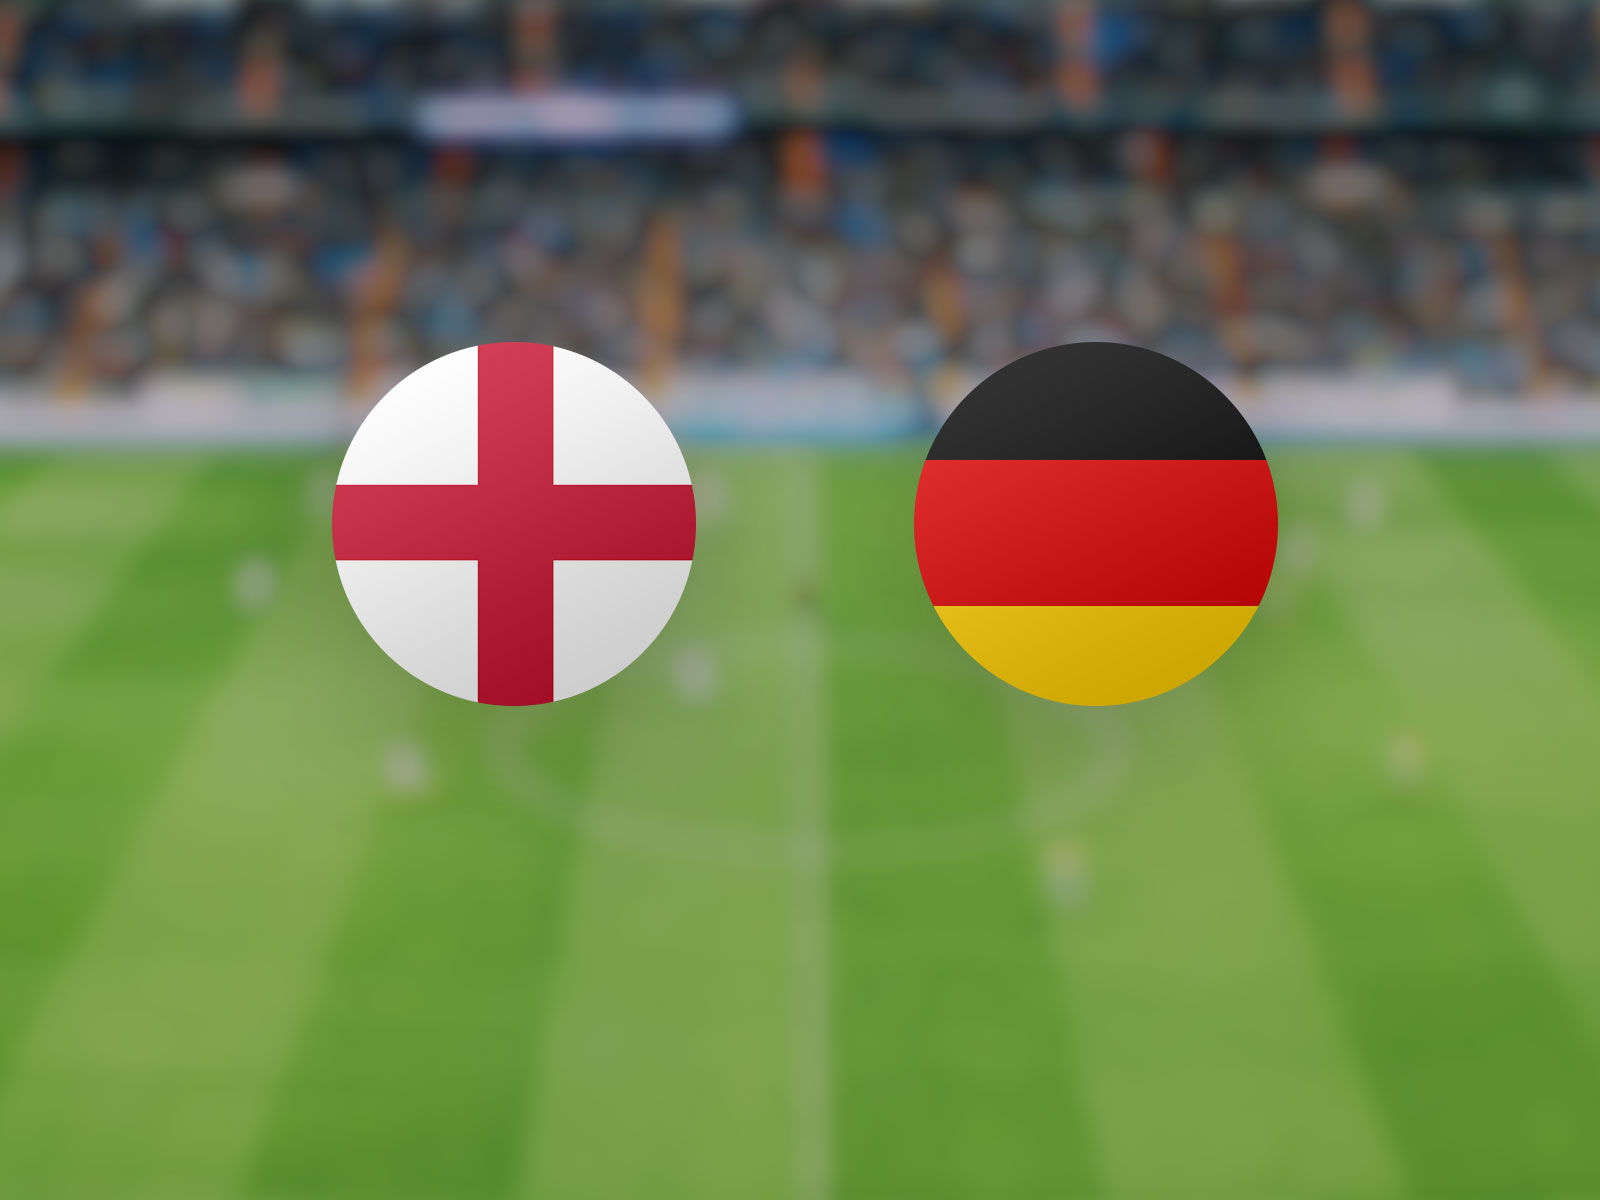 watch England vs Germany in Euro 2020 last-16 knockout rounds